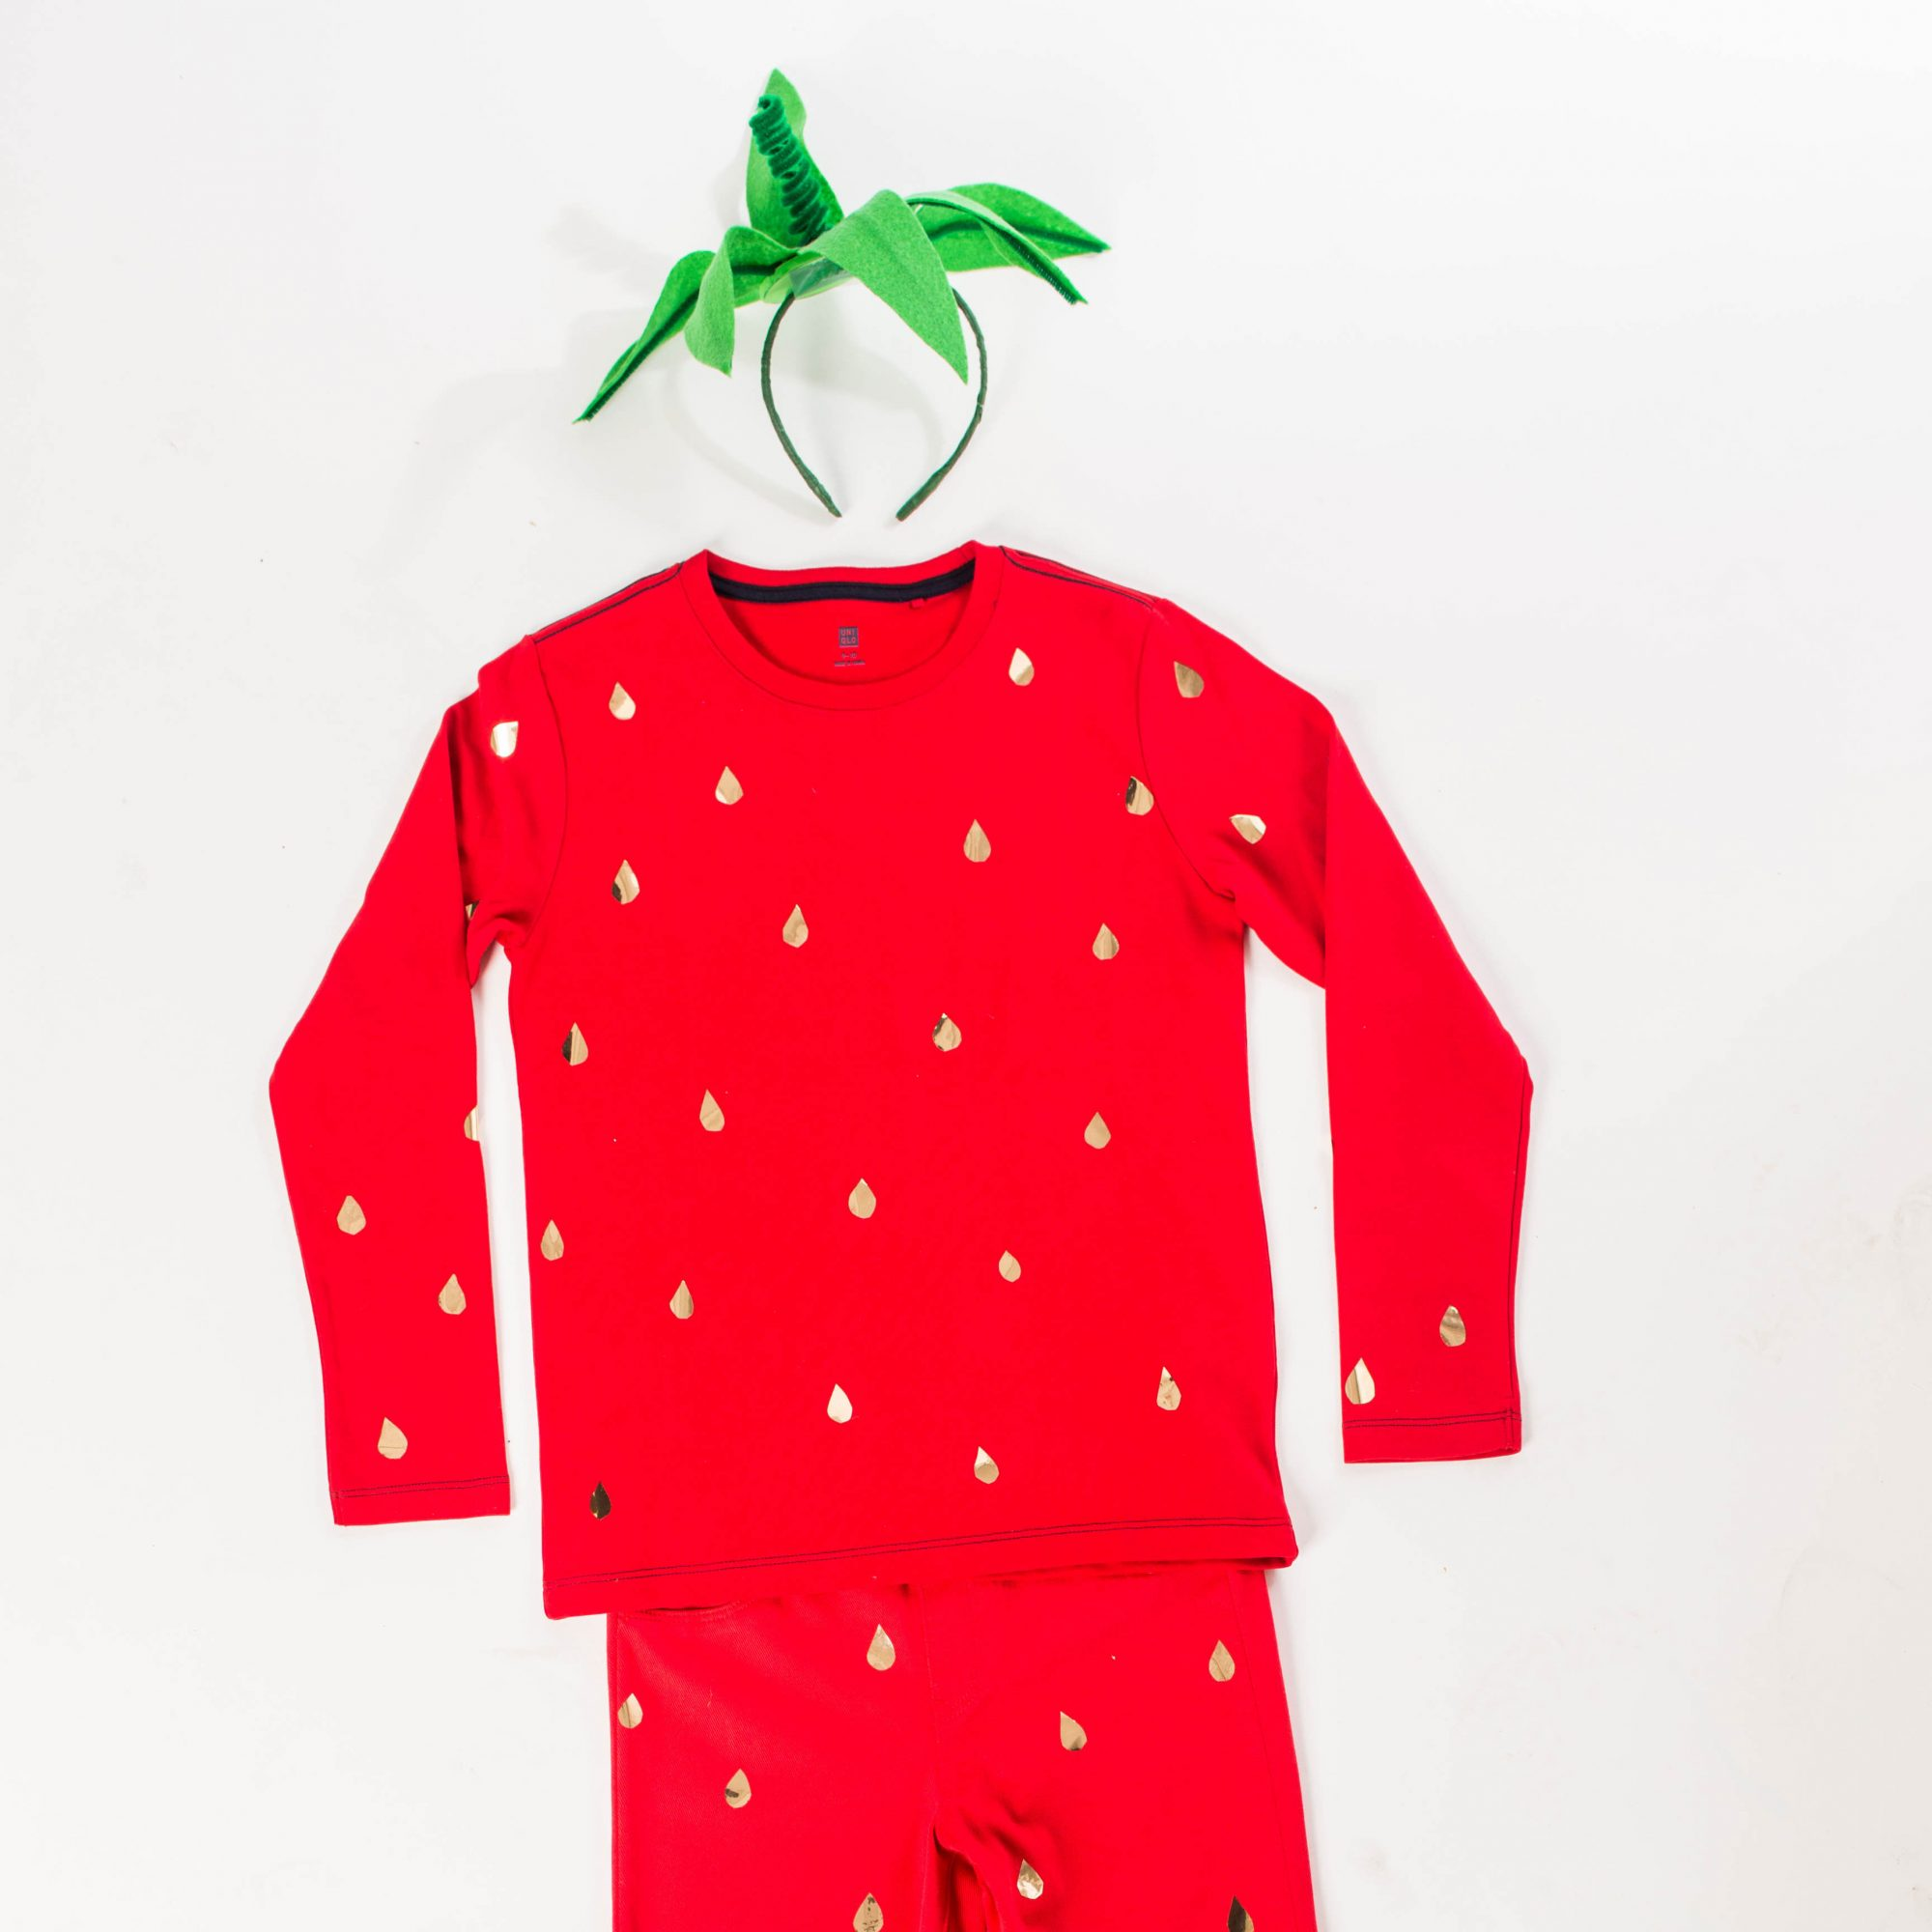 How To Strawberry Jam Costume